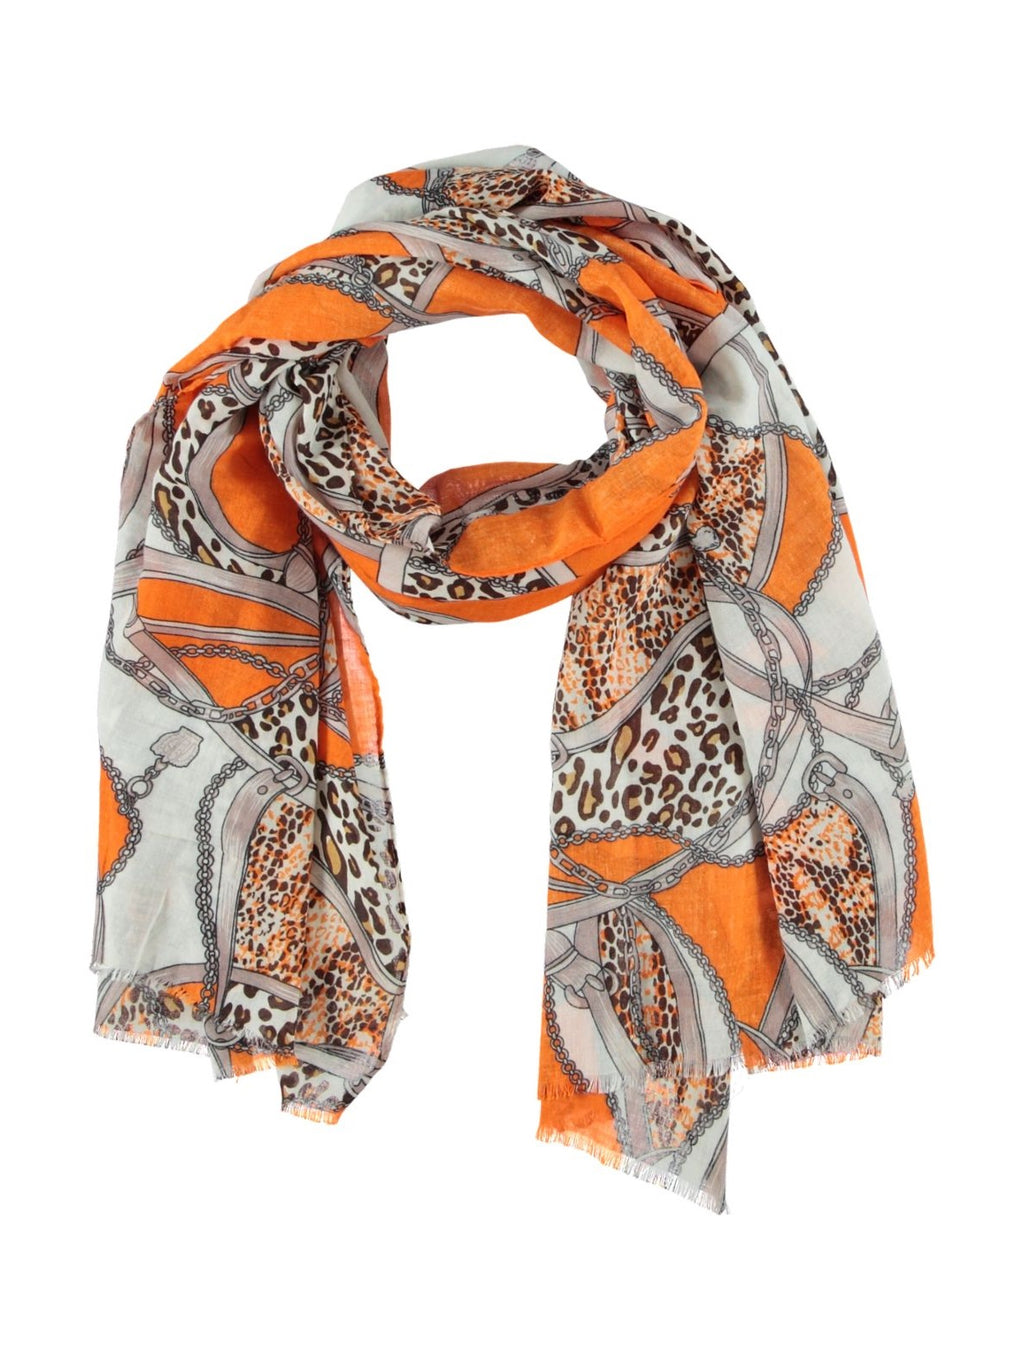 sjaal shawls scarf tijgerprint luipaard leopard chain ketting oranje musthave it all musthaves